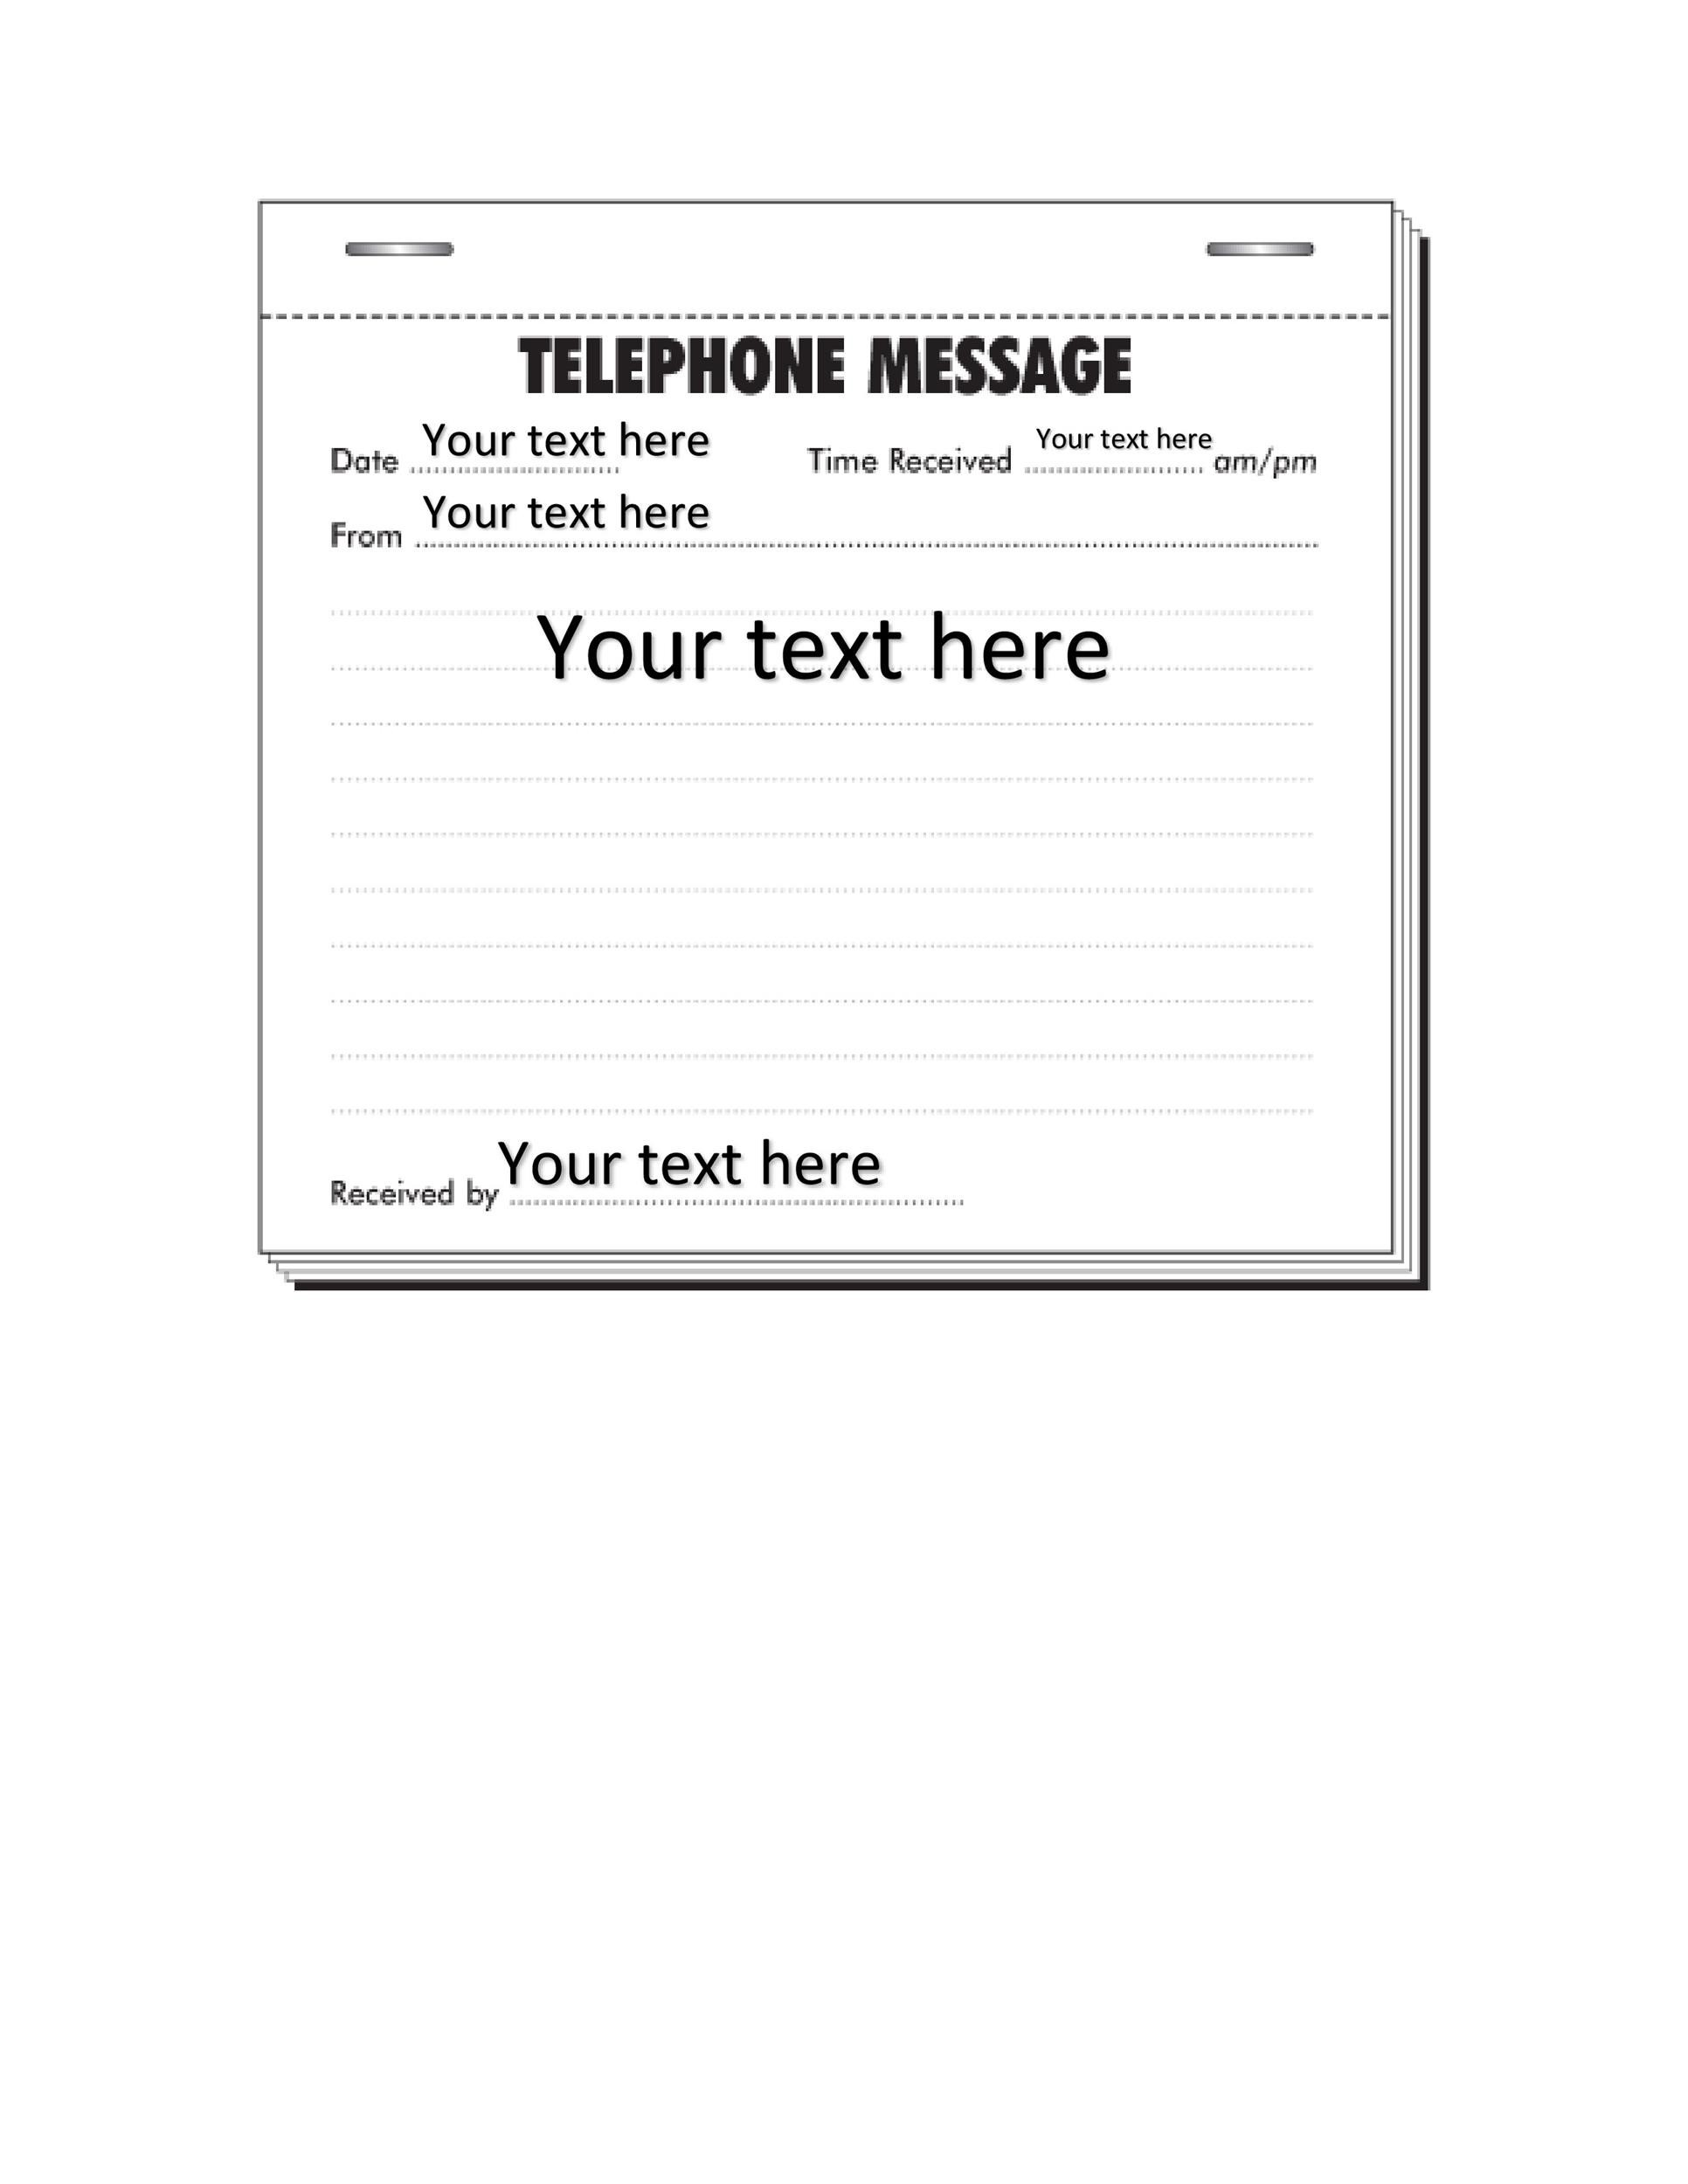 Free phone message template 16